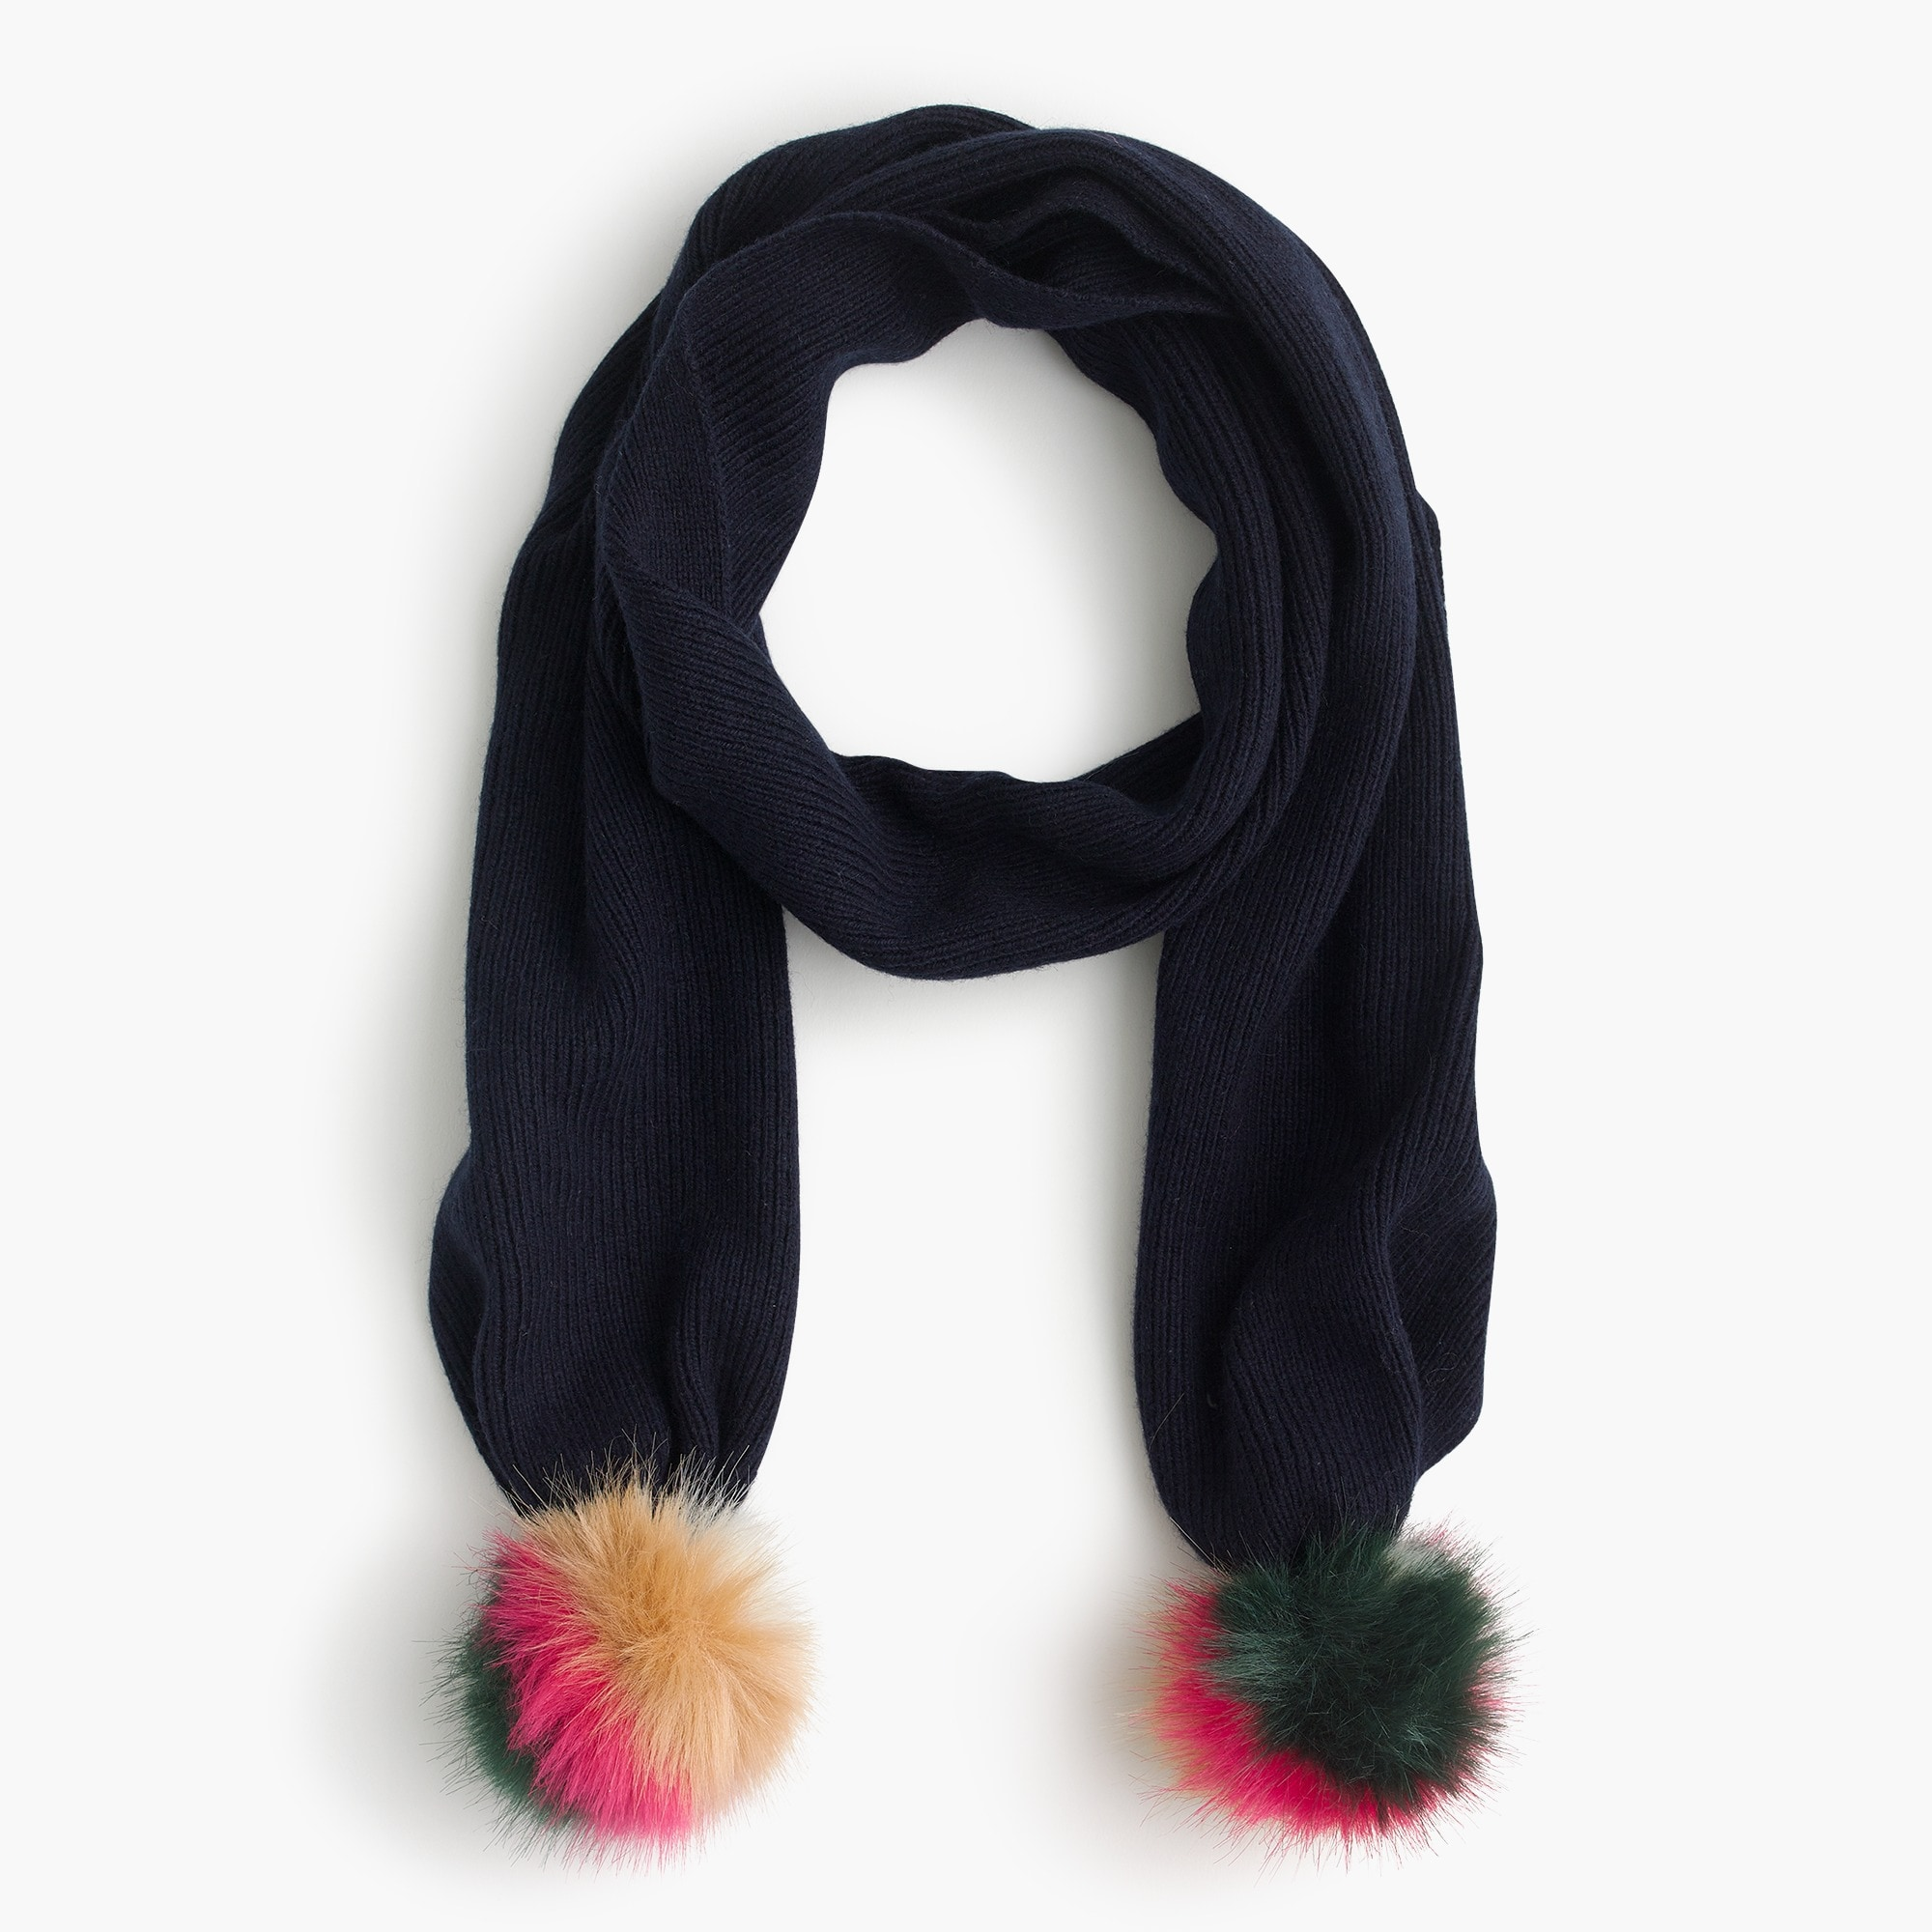 Girls' knit scarf with striped furry pom-poms